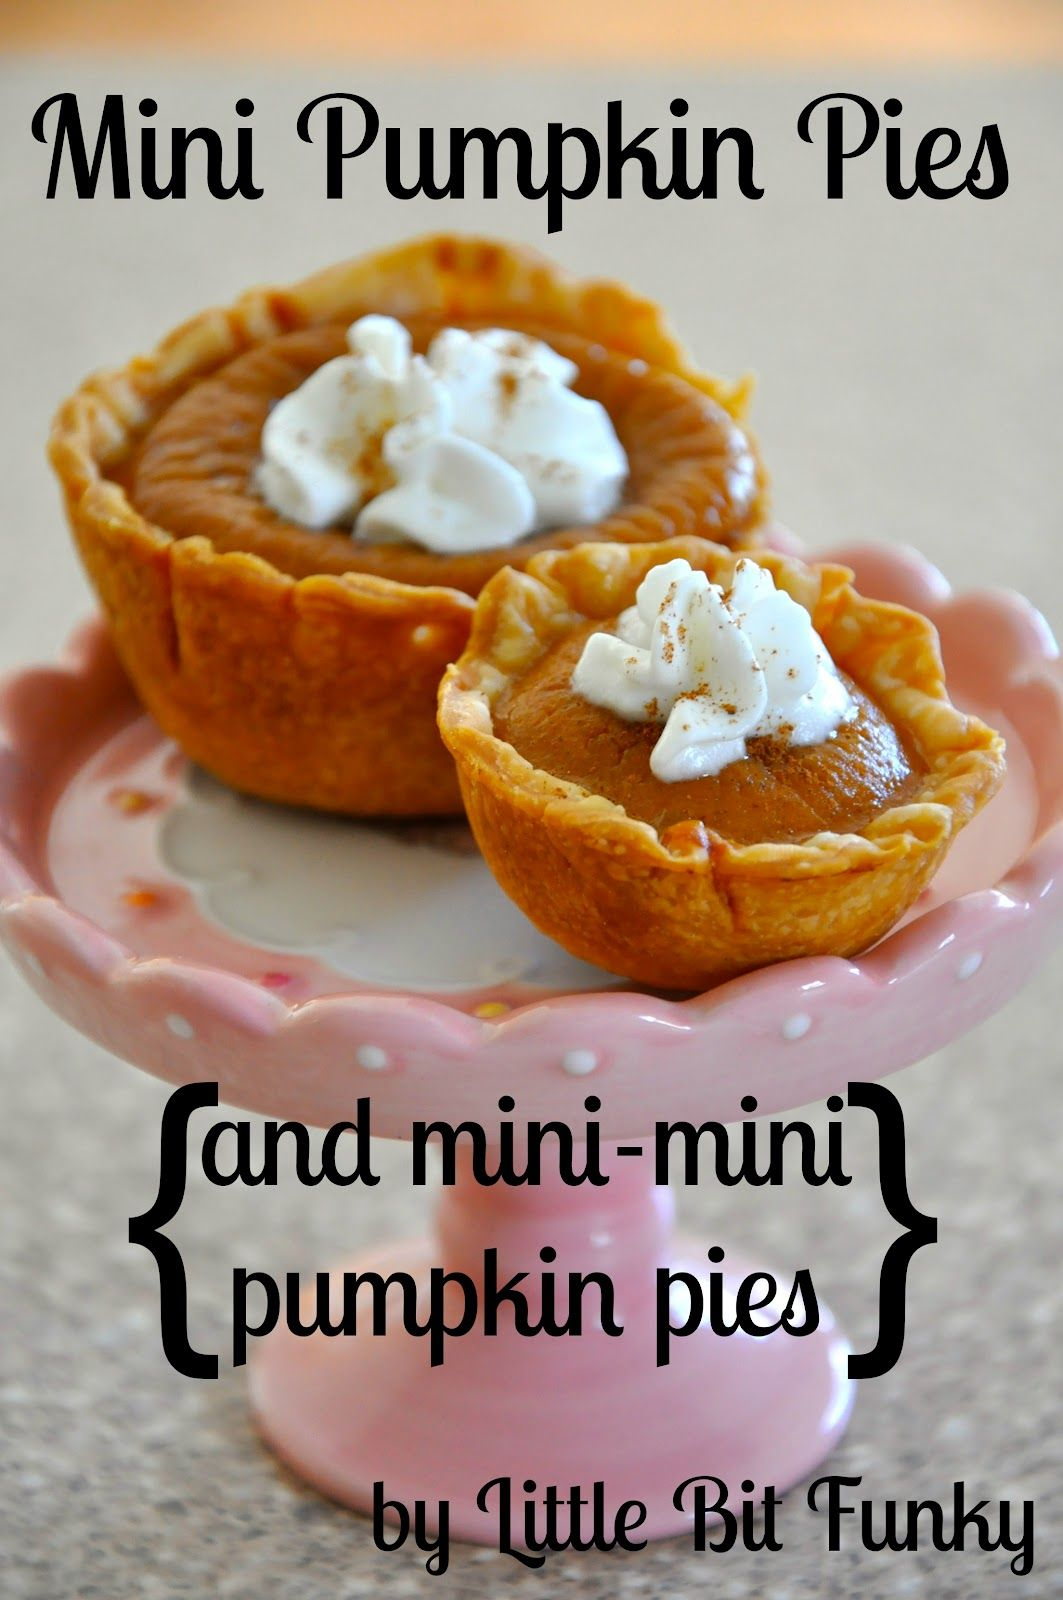 Little Bit Funky: what I made for monday - mini pumpkin pies - and mini mini pumpkin pies